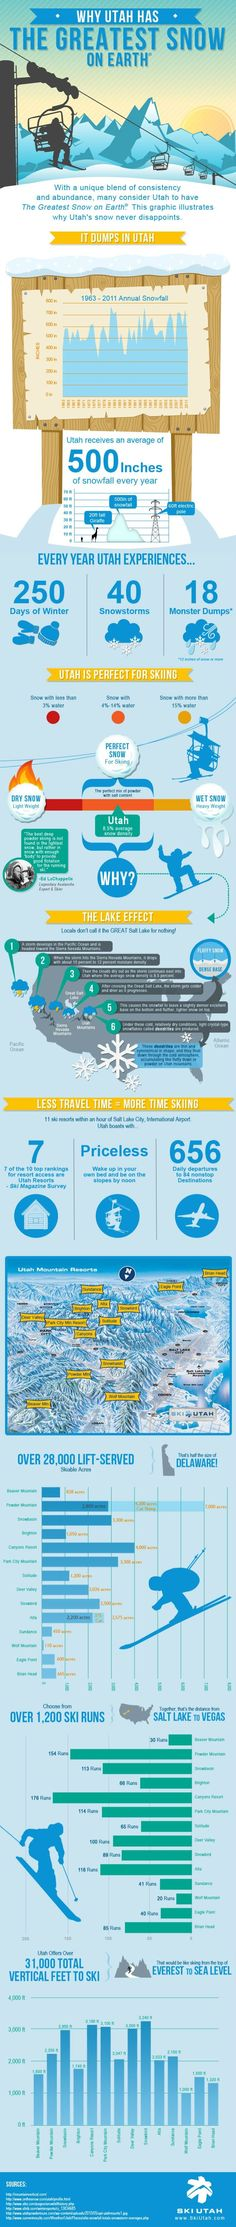 Why Utah has the greatest snow on earth: This graphic does a great job of showing off an industry and proving a point. Utah has amazing snow and it is hard to argue with a graphic so amazing as this one. Salt Lake City Bars, Utah Snow, Top Ski, Park City Utah, Best Skis, Ski Vacation, Snow Skiing, Earth, Snowboarding